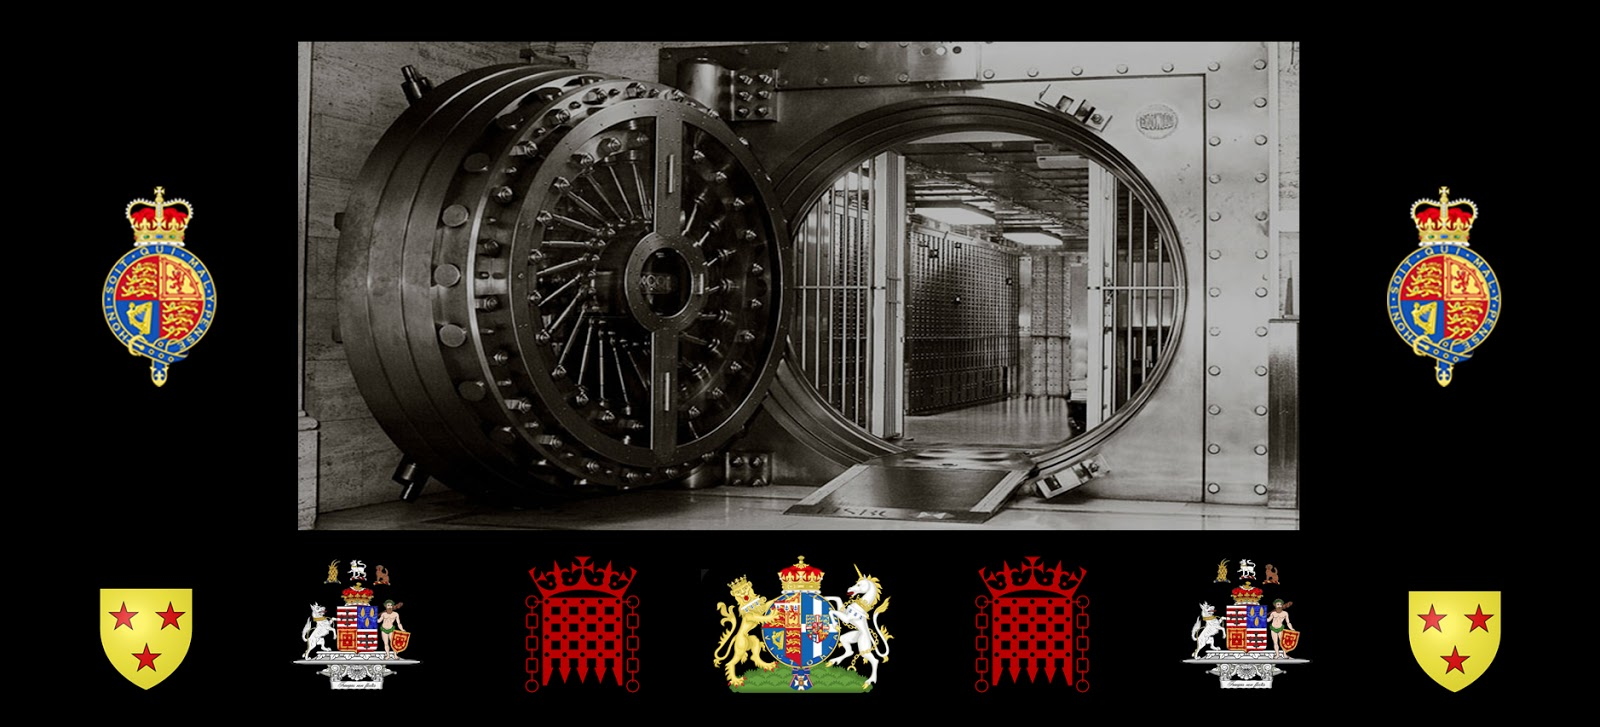 Withersworldwide Law Firm = LOCKDOWN = City of London Police